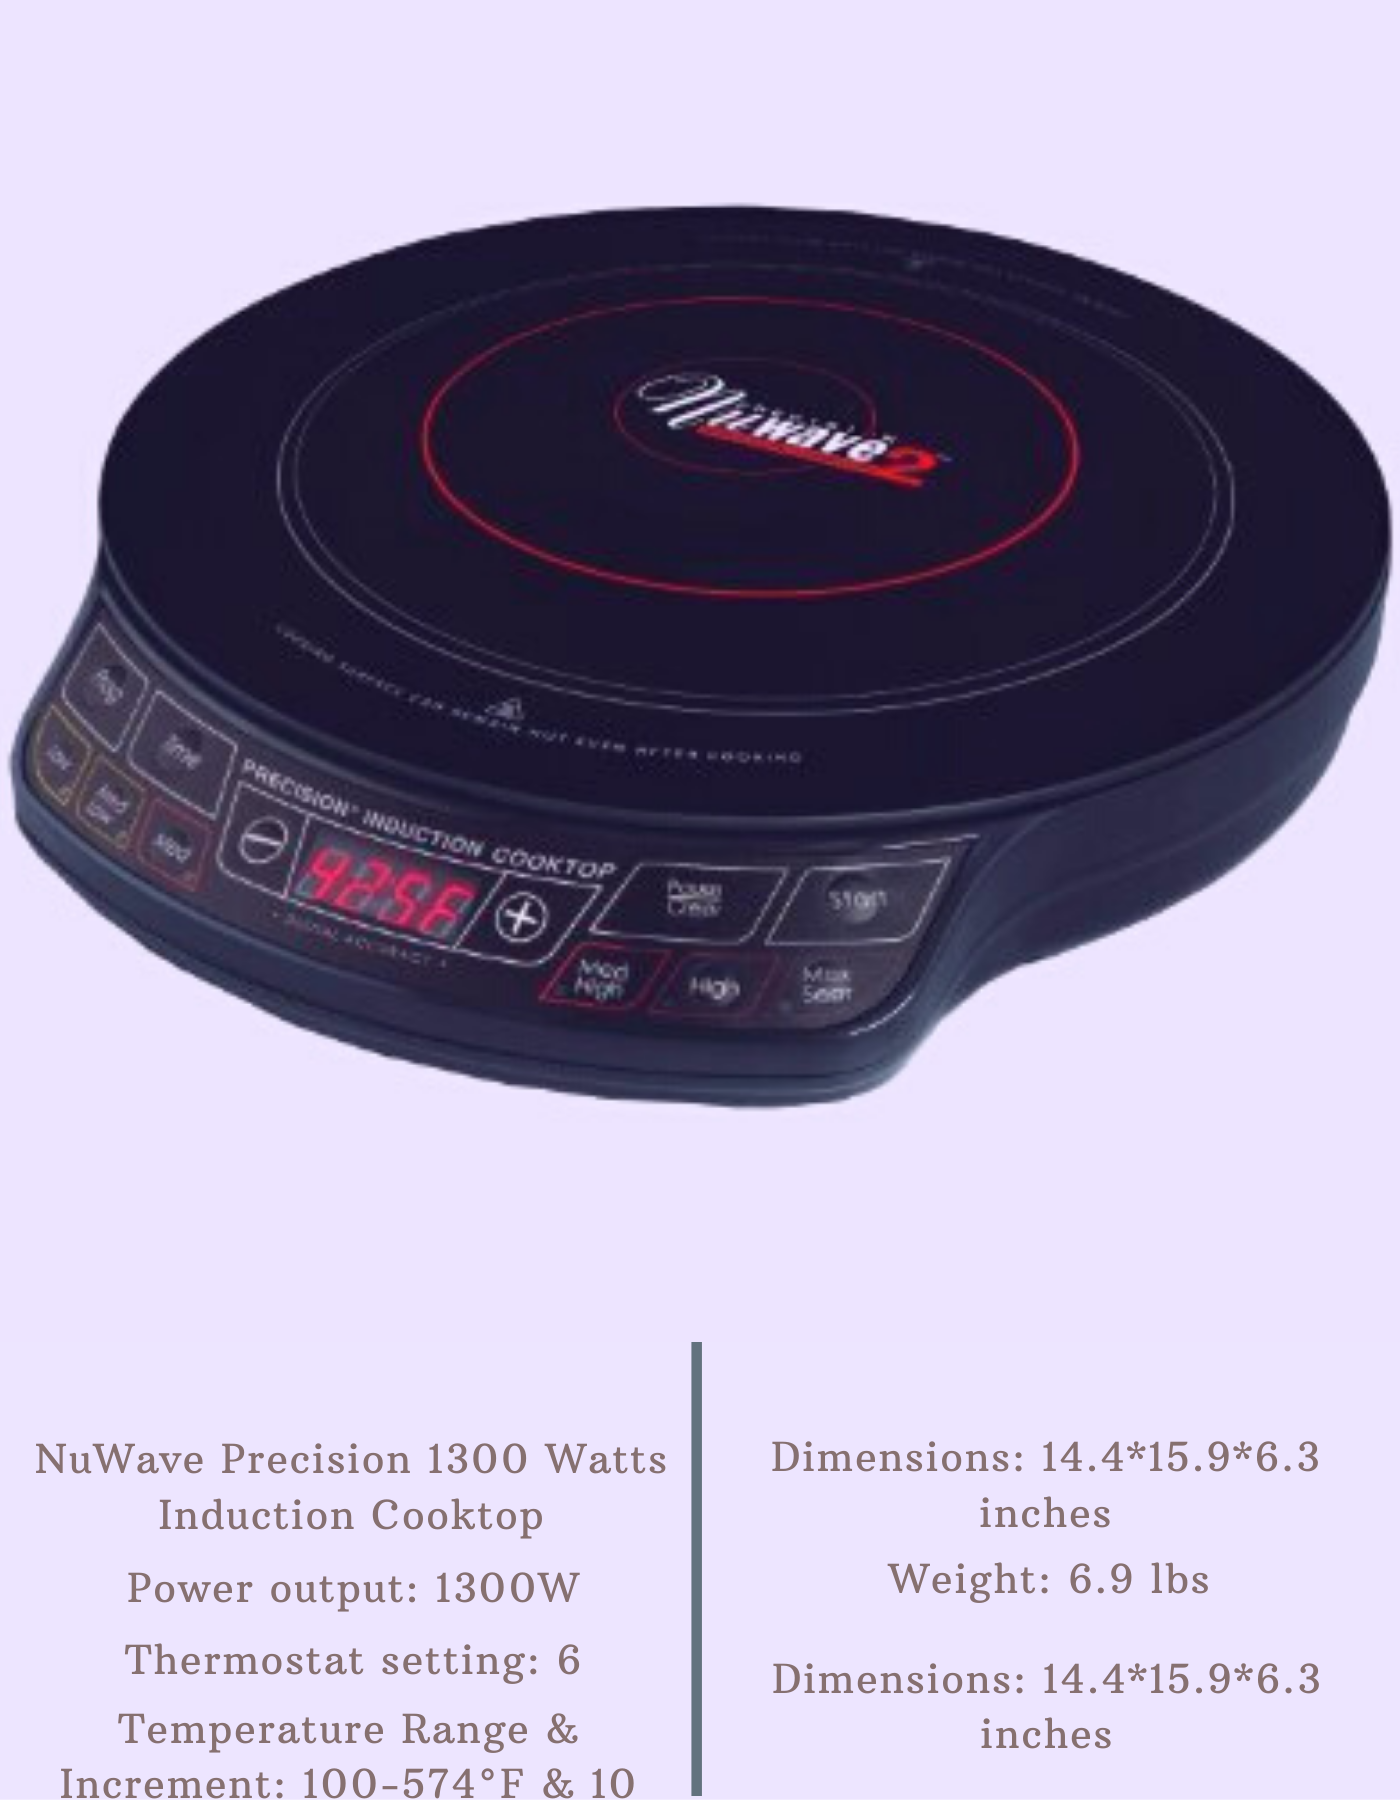 Nuwave Precision 1300 Watts Induction Cooktop In 2020 Electric Stove Induction Cooktop Cooktop